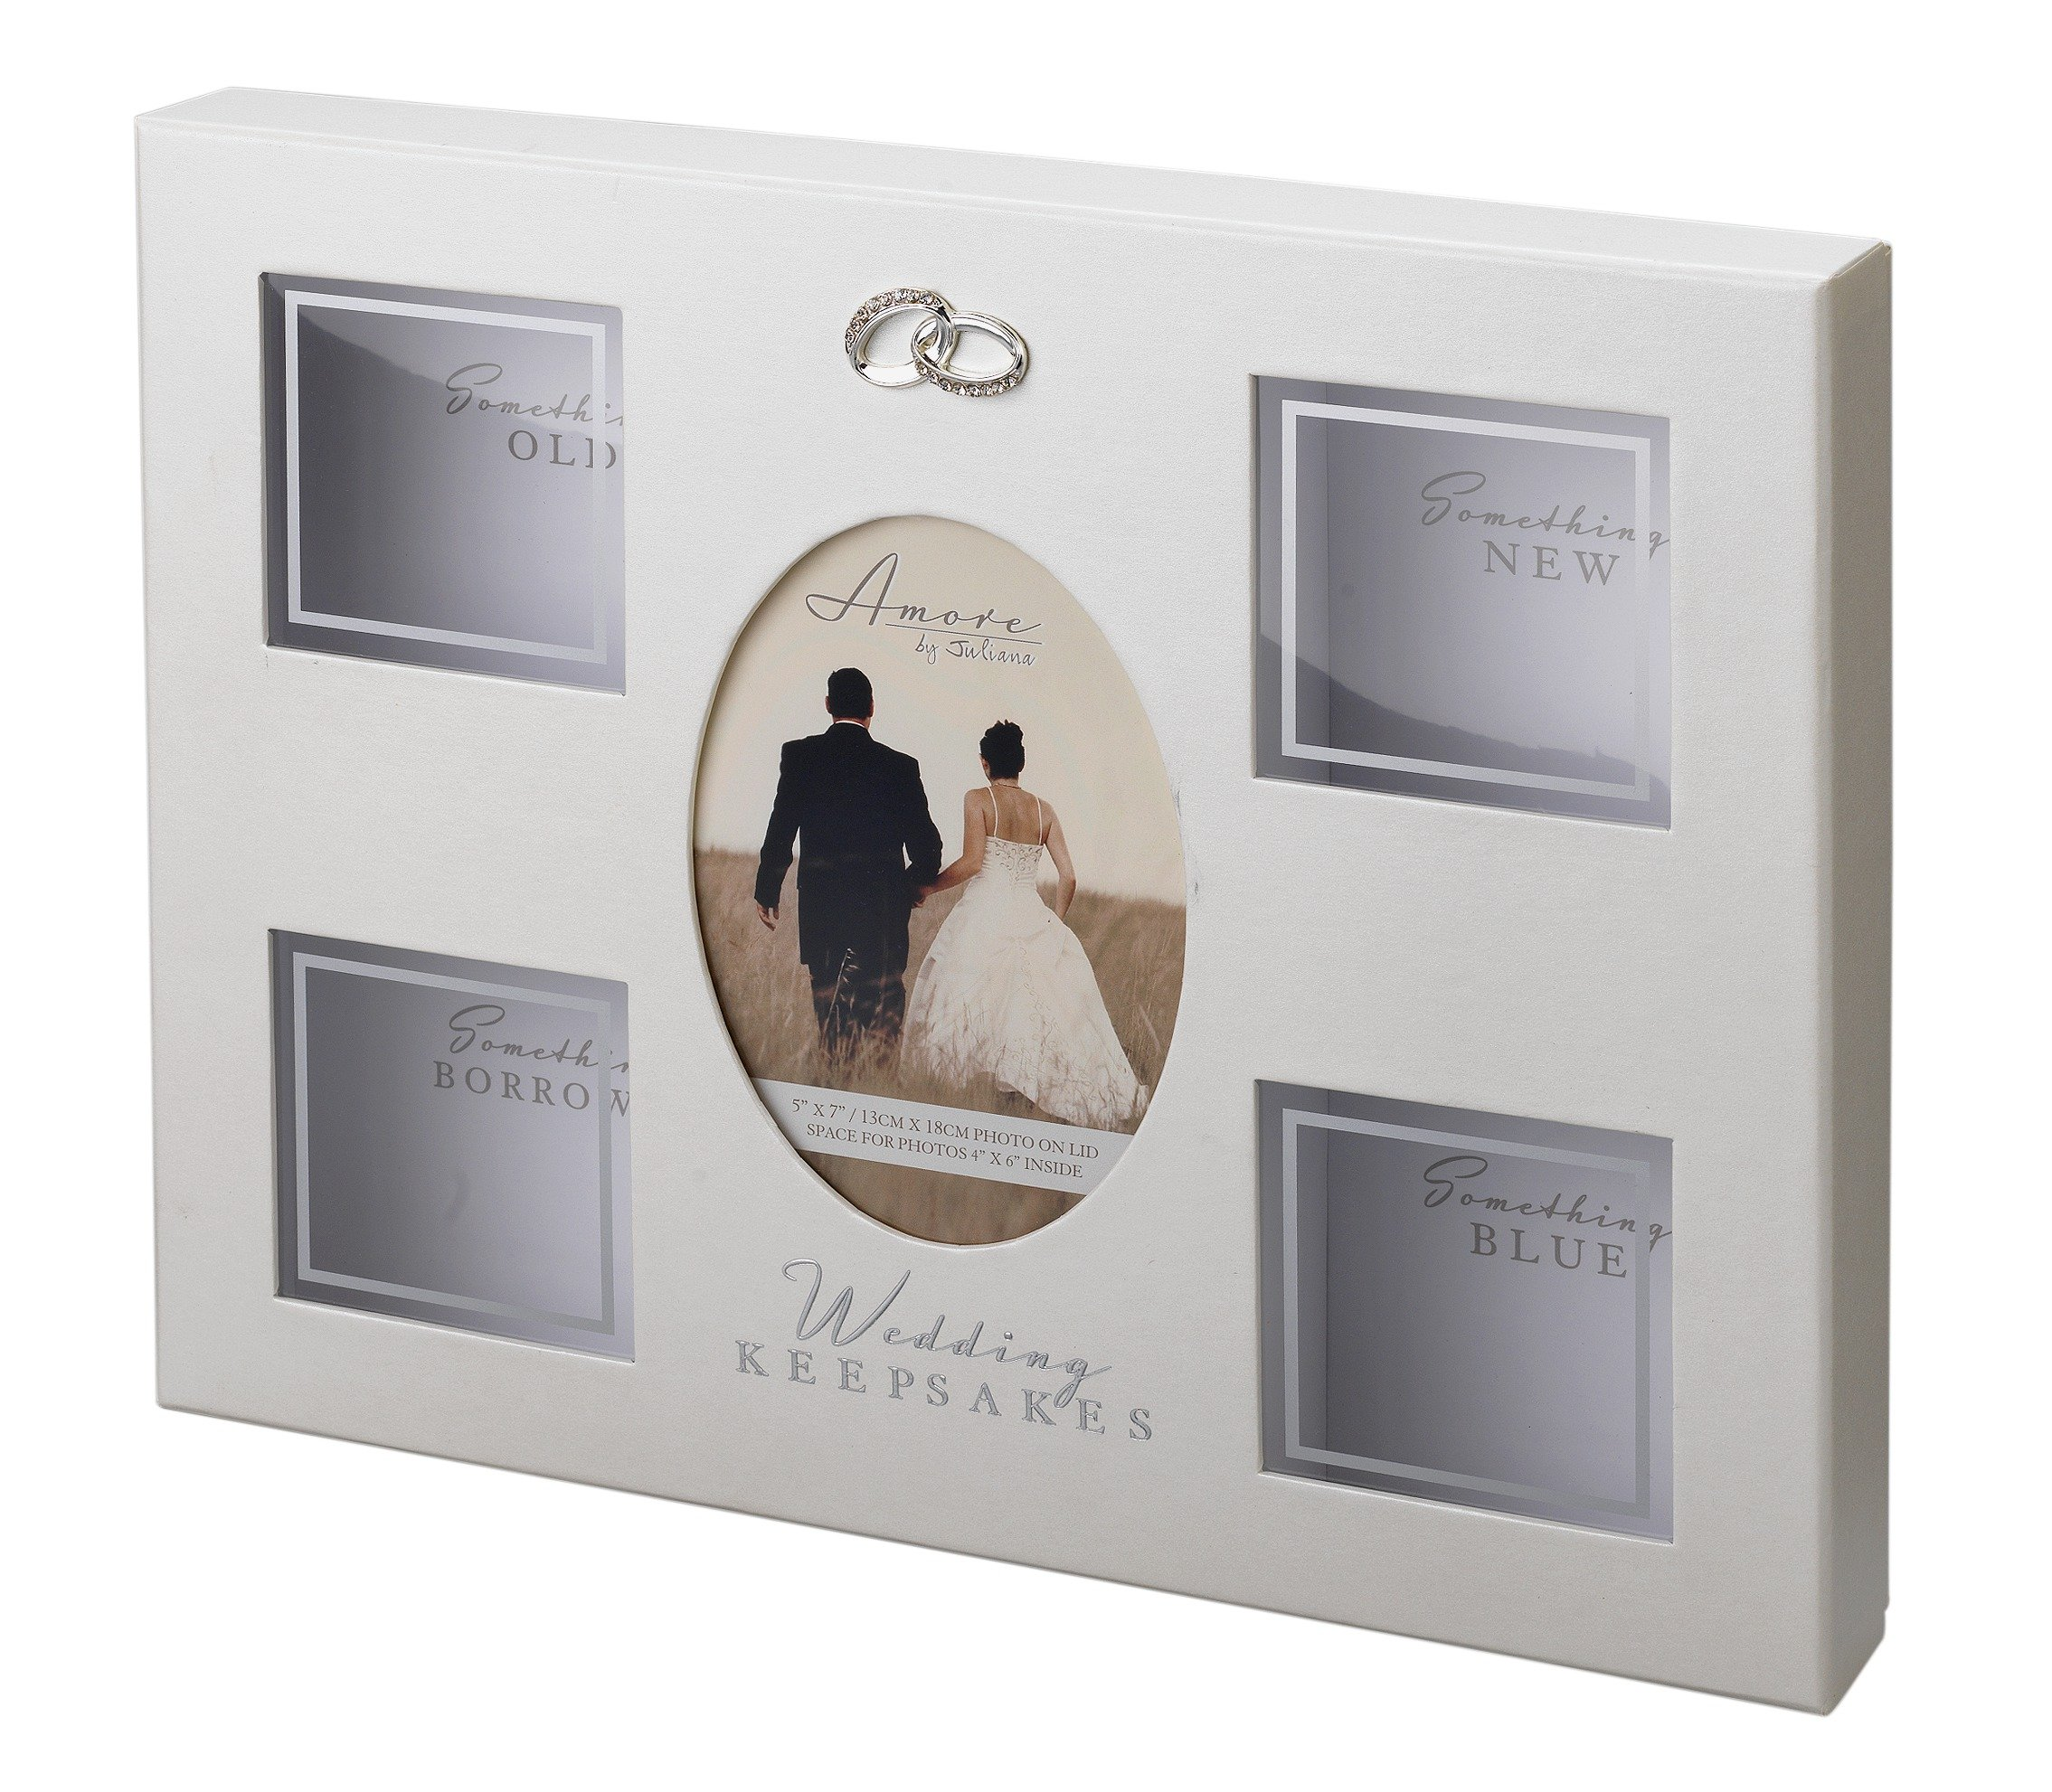 Image of Amore Wedding Keepsake Box with 4 Compartments